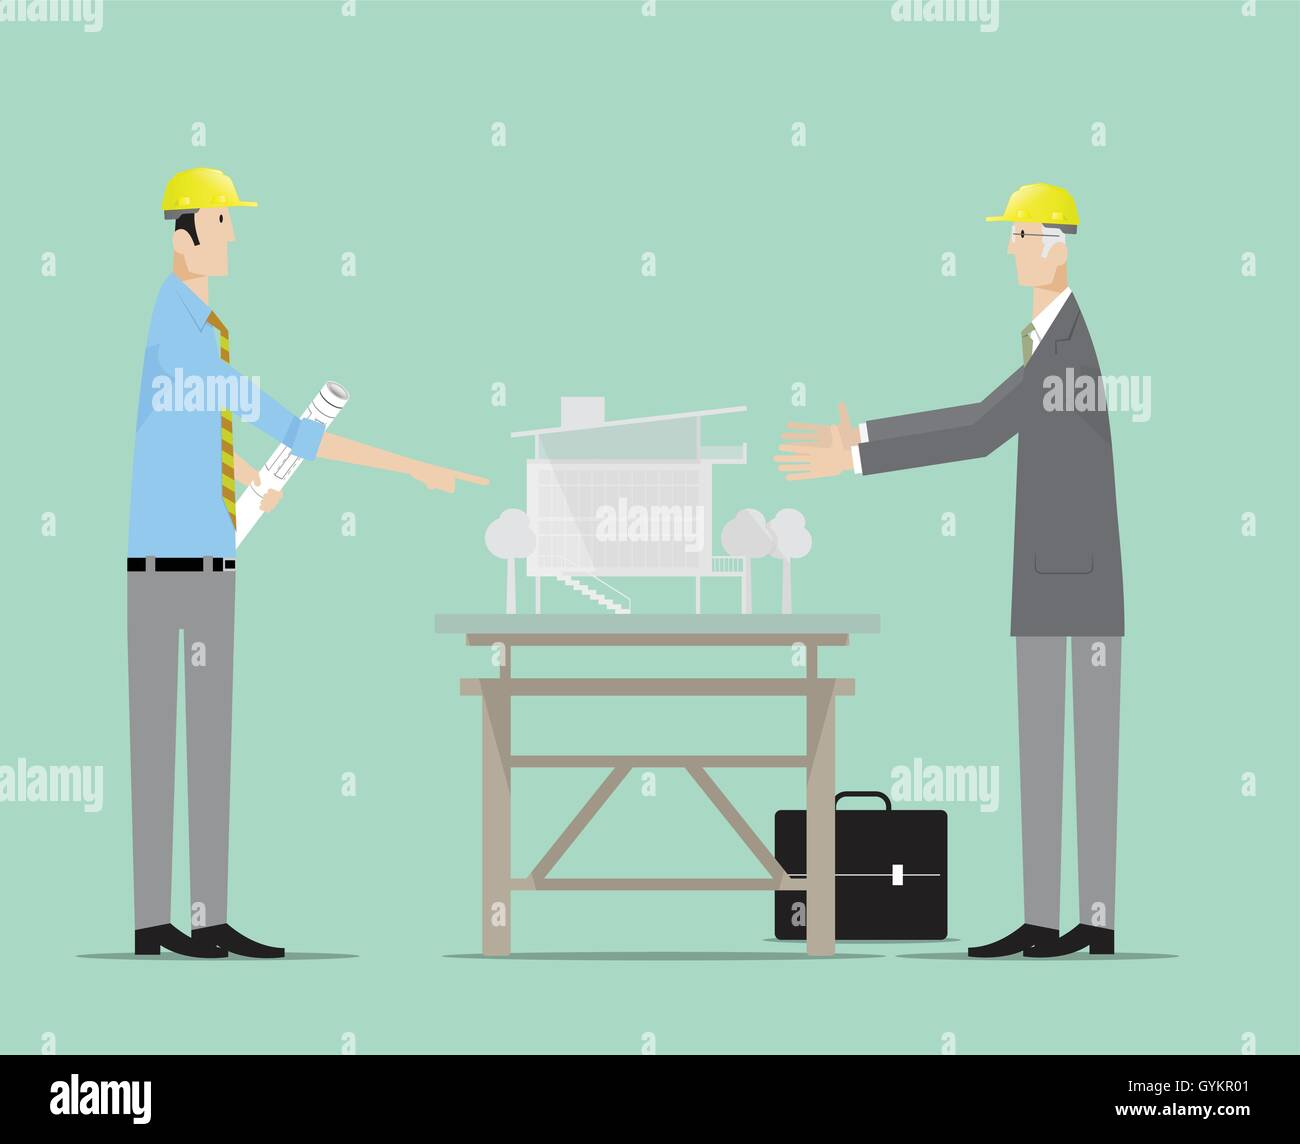 Architects discussing about architectural model building. Stock Vector